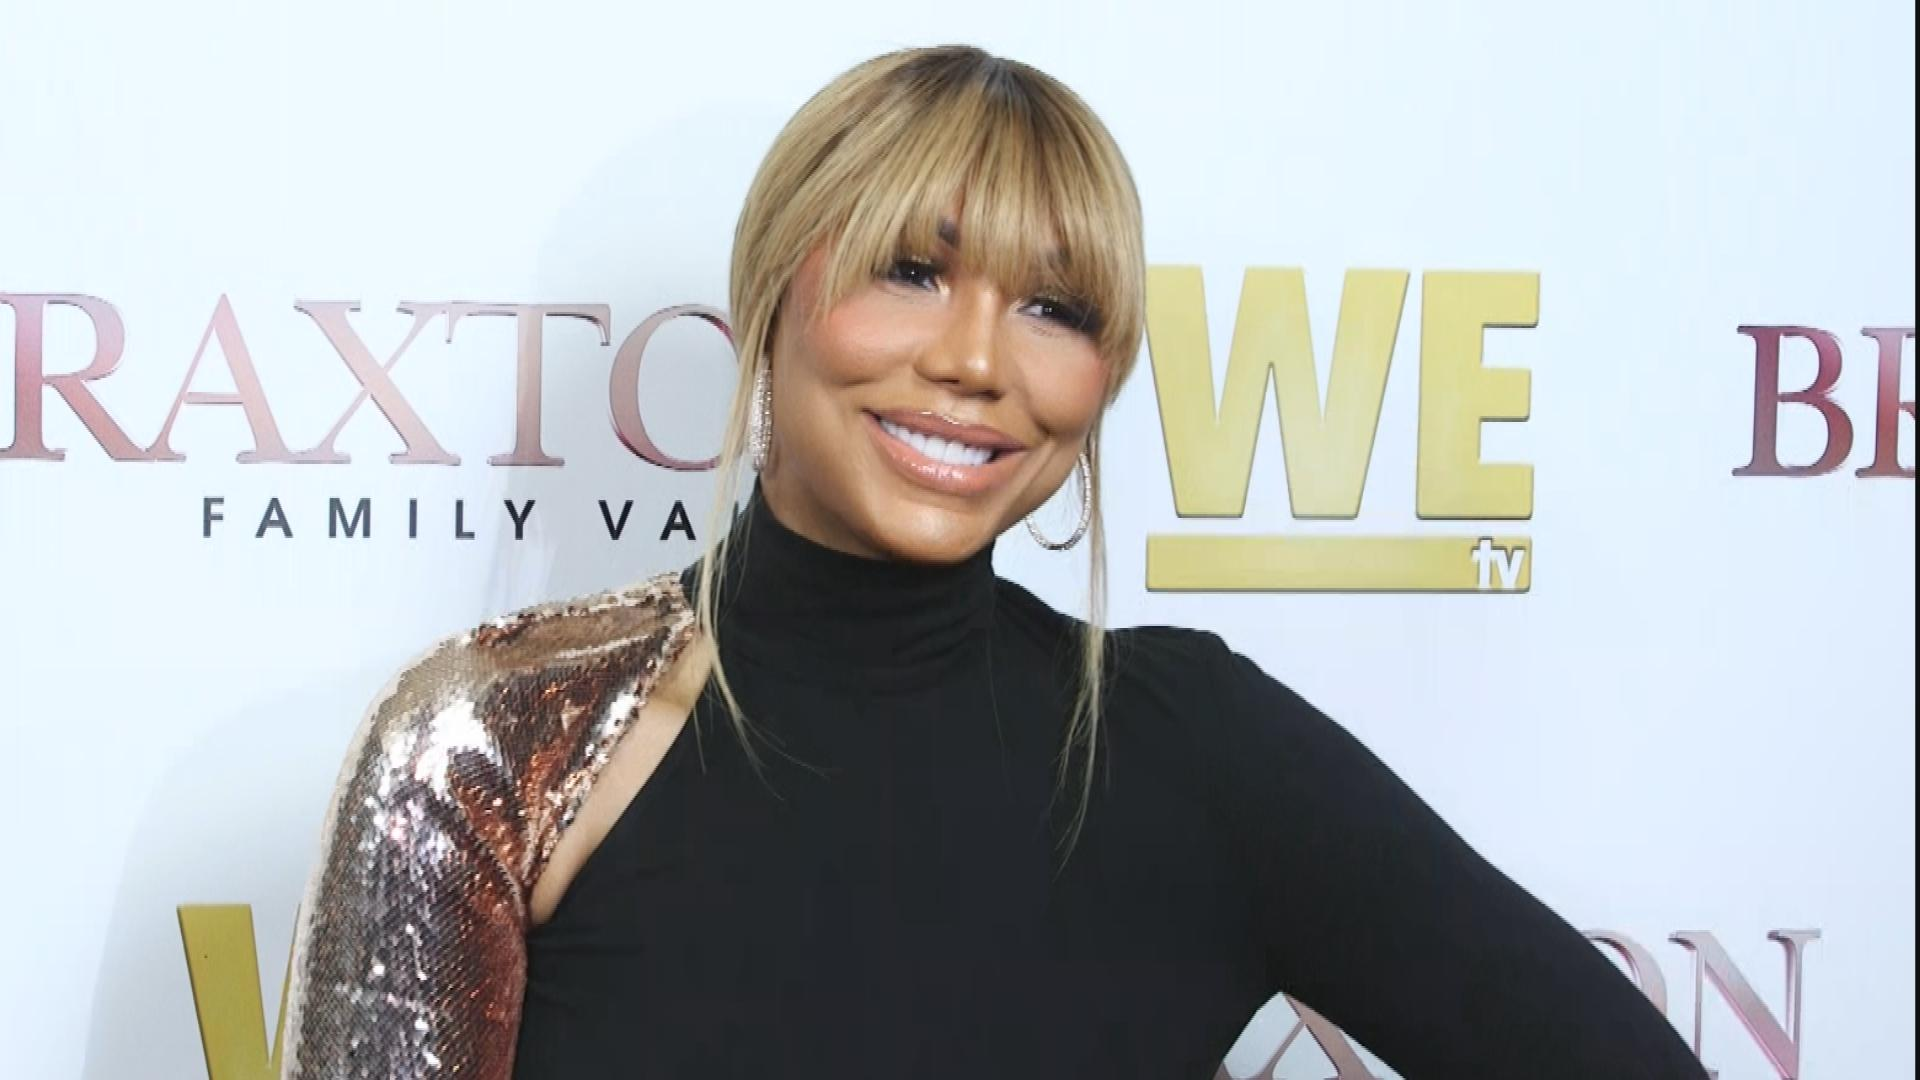 tamar-braxton-shares-logans-ride-fort-her-boys-birthday-watch-the-exciting-videos-that-made-fans-day